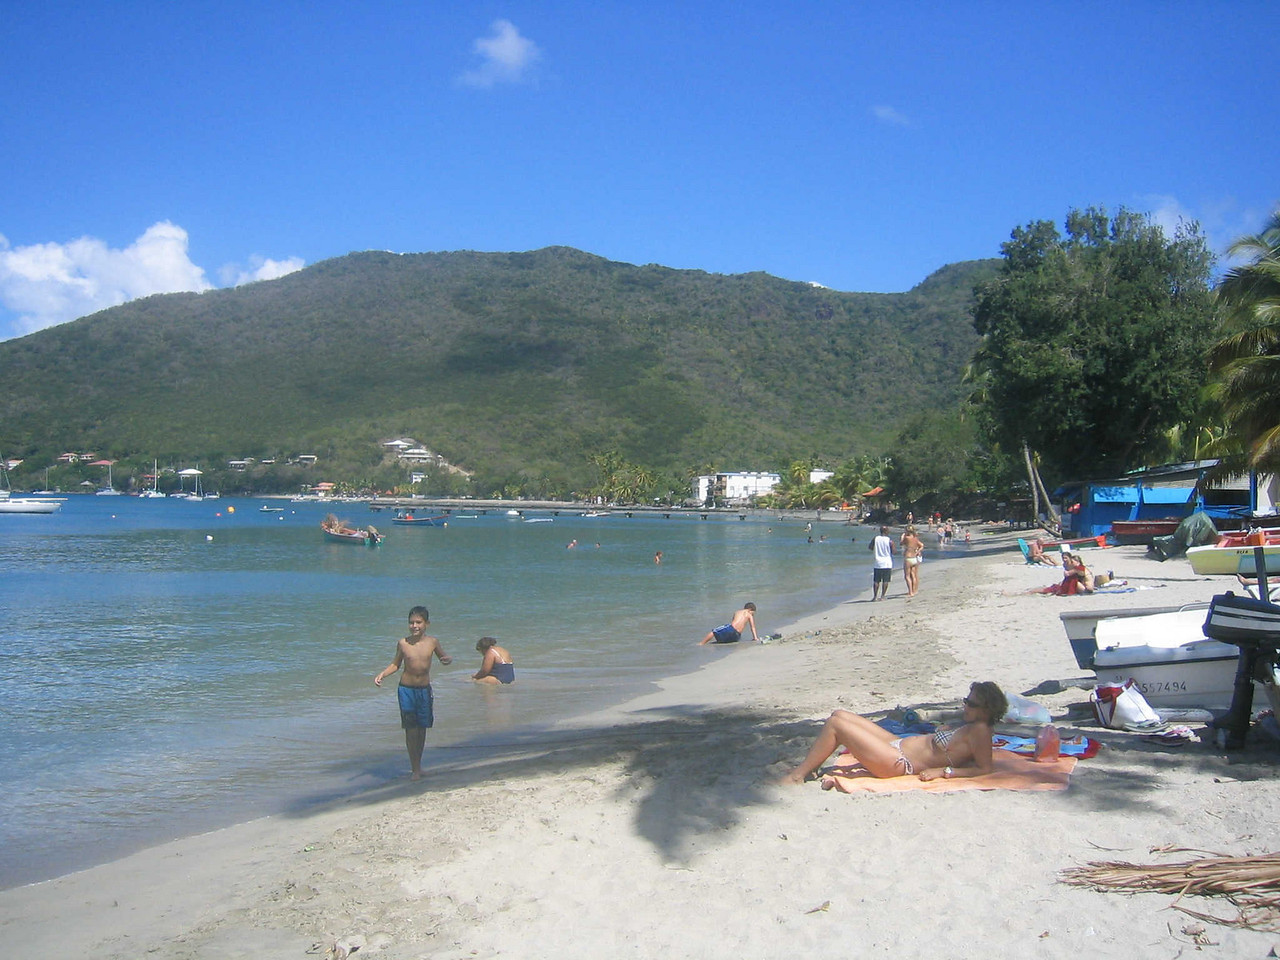 The beach at Grande Anse is rather narrow, but it is long, and there is lots to do.